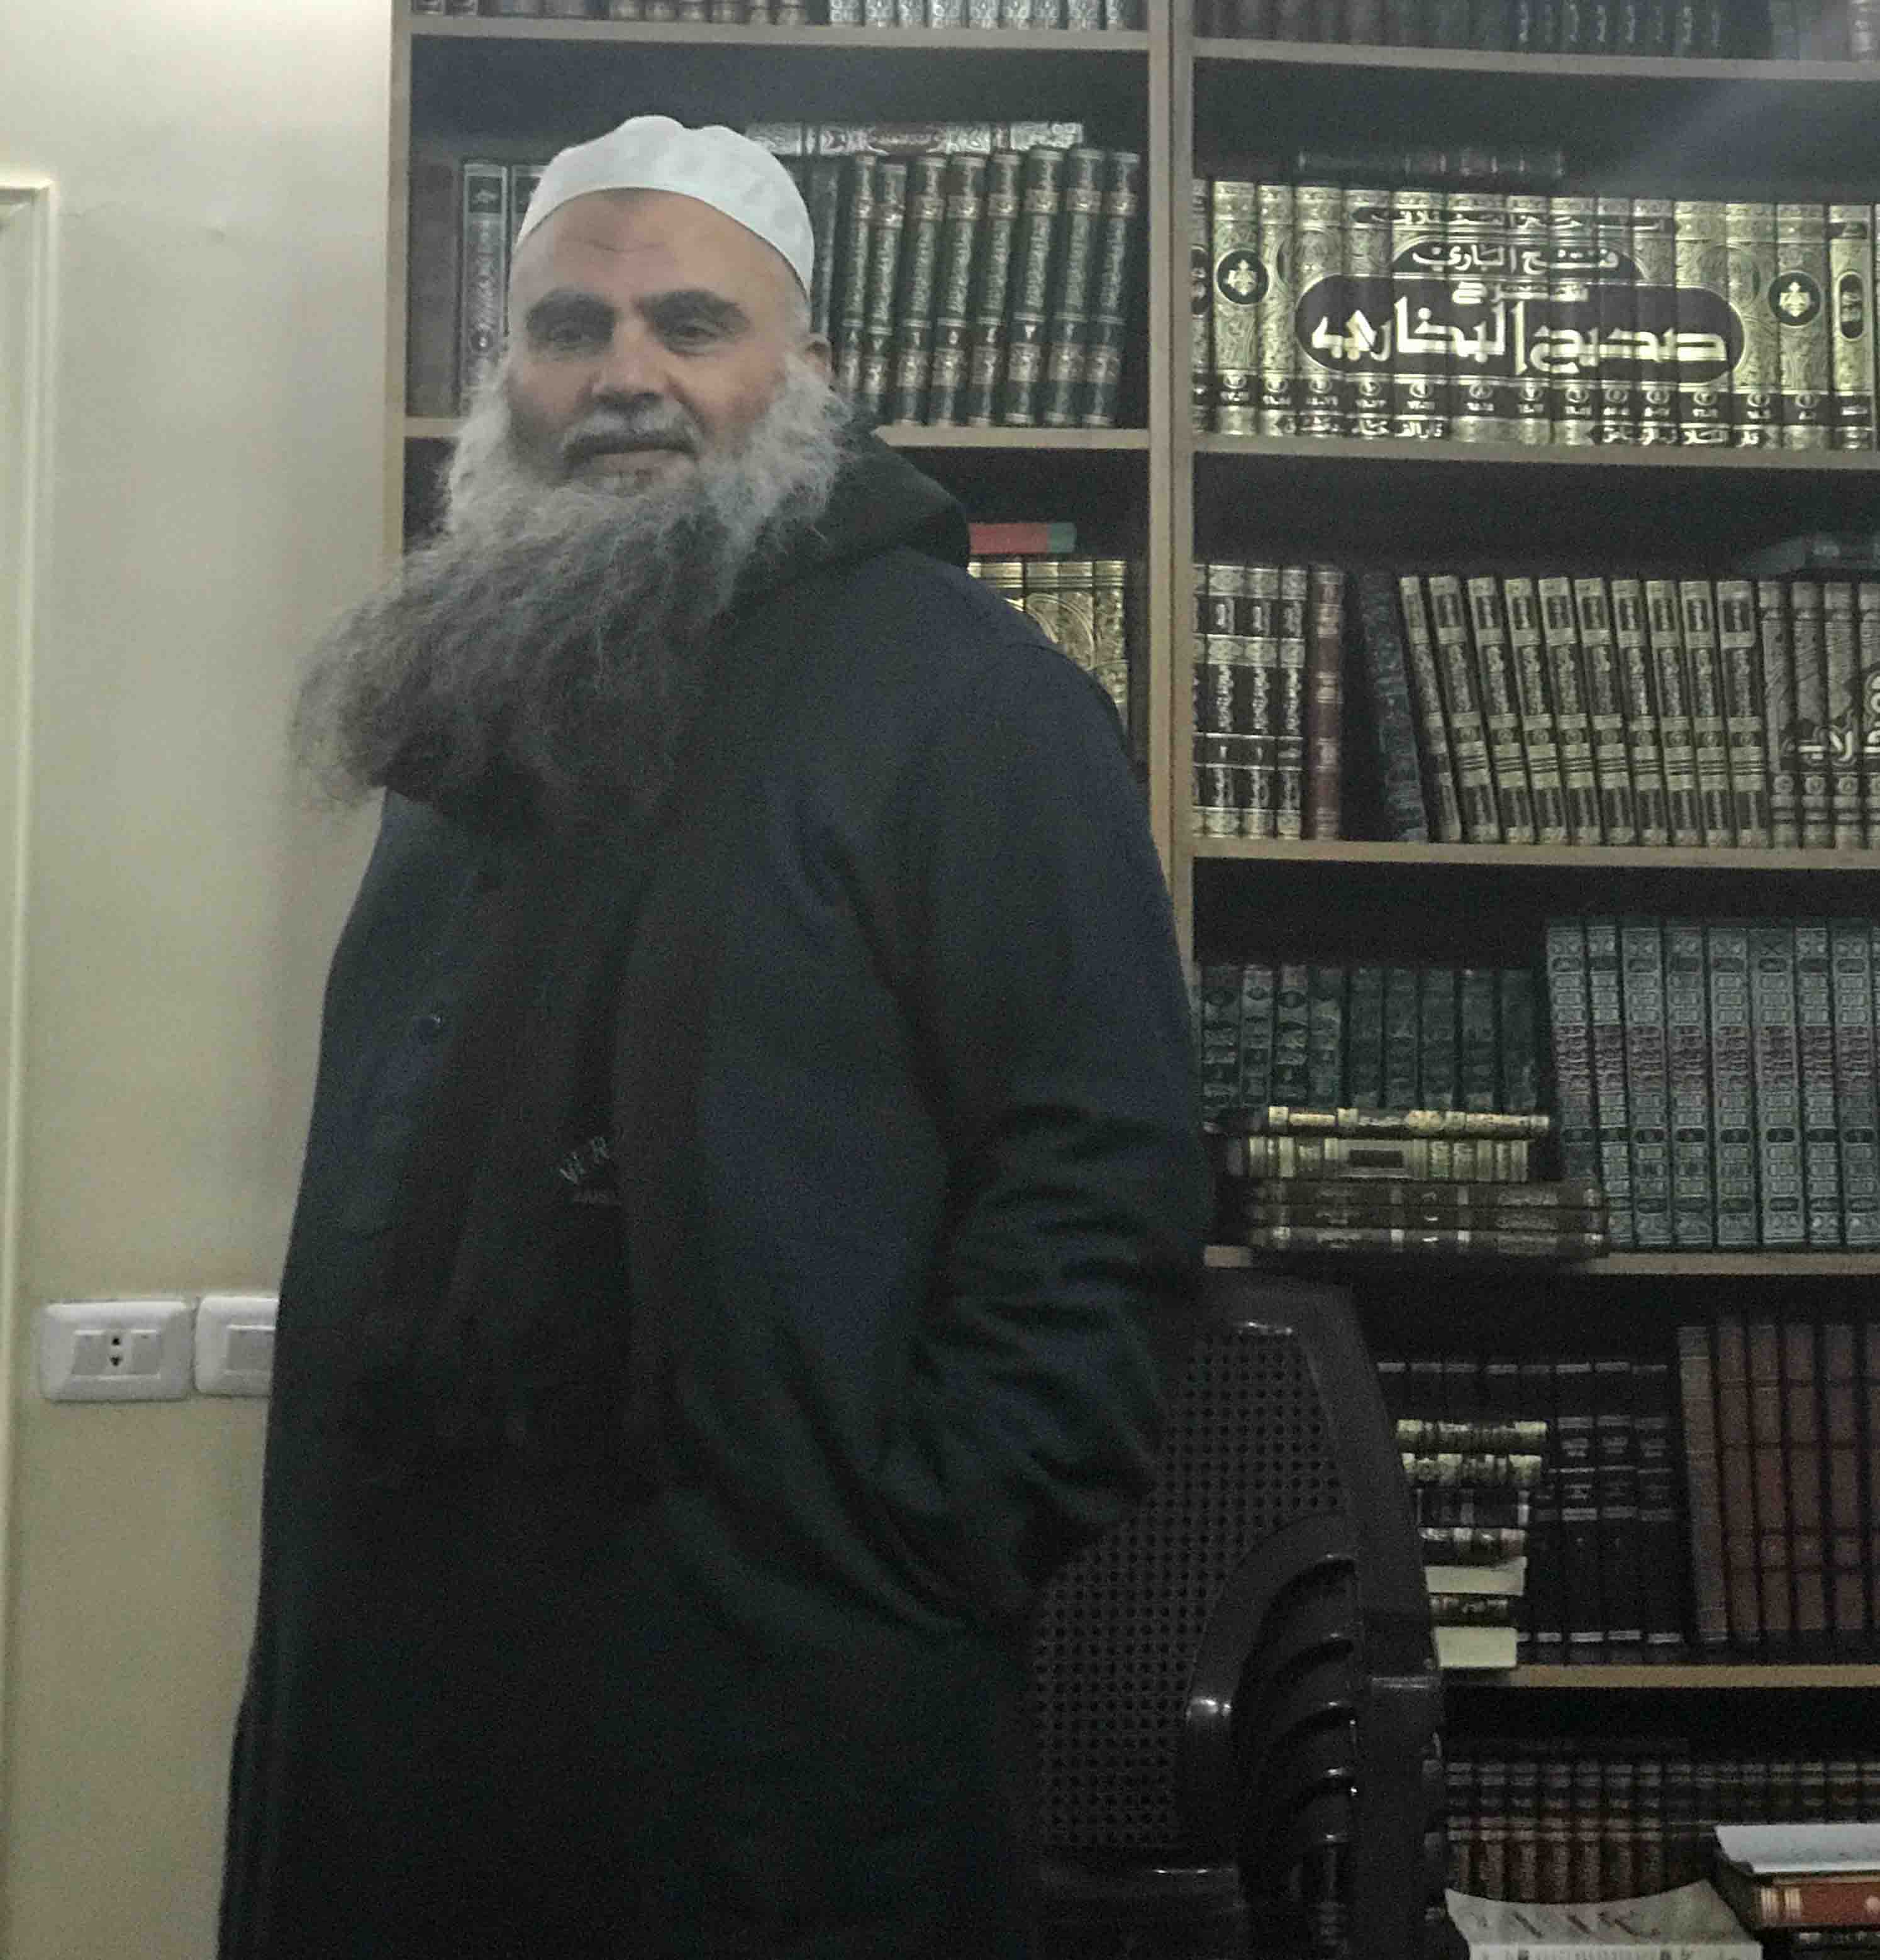 Talking To Abu Qatada About Donald Trump's Presidency And The Future Of The Middle East